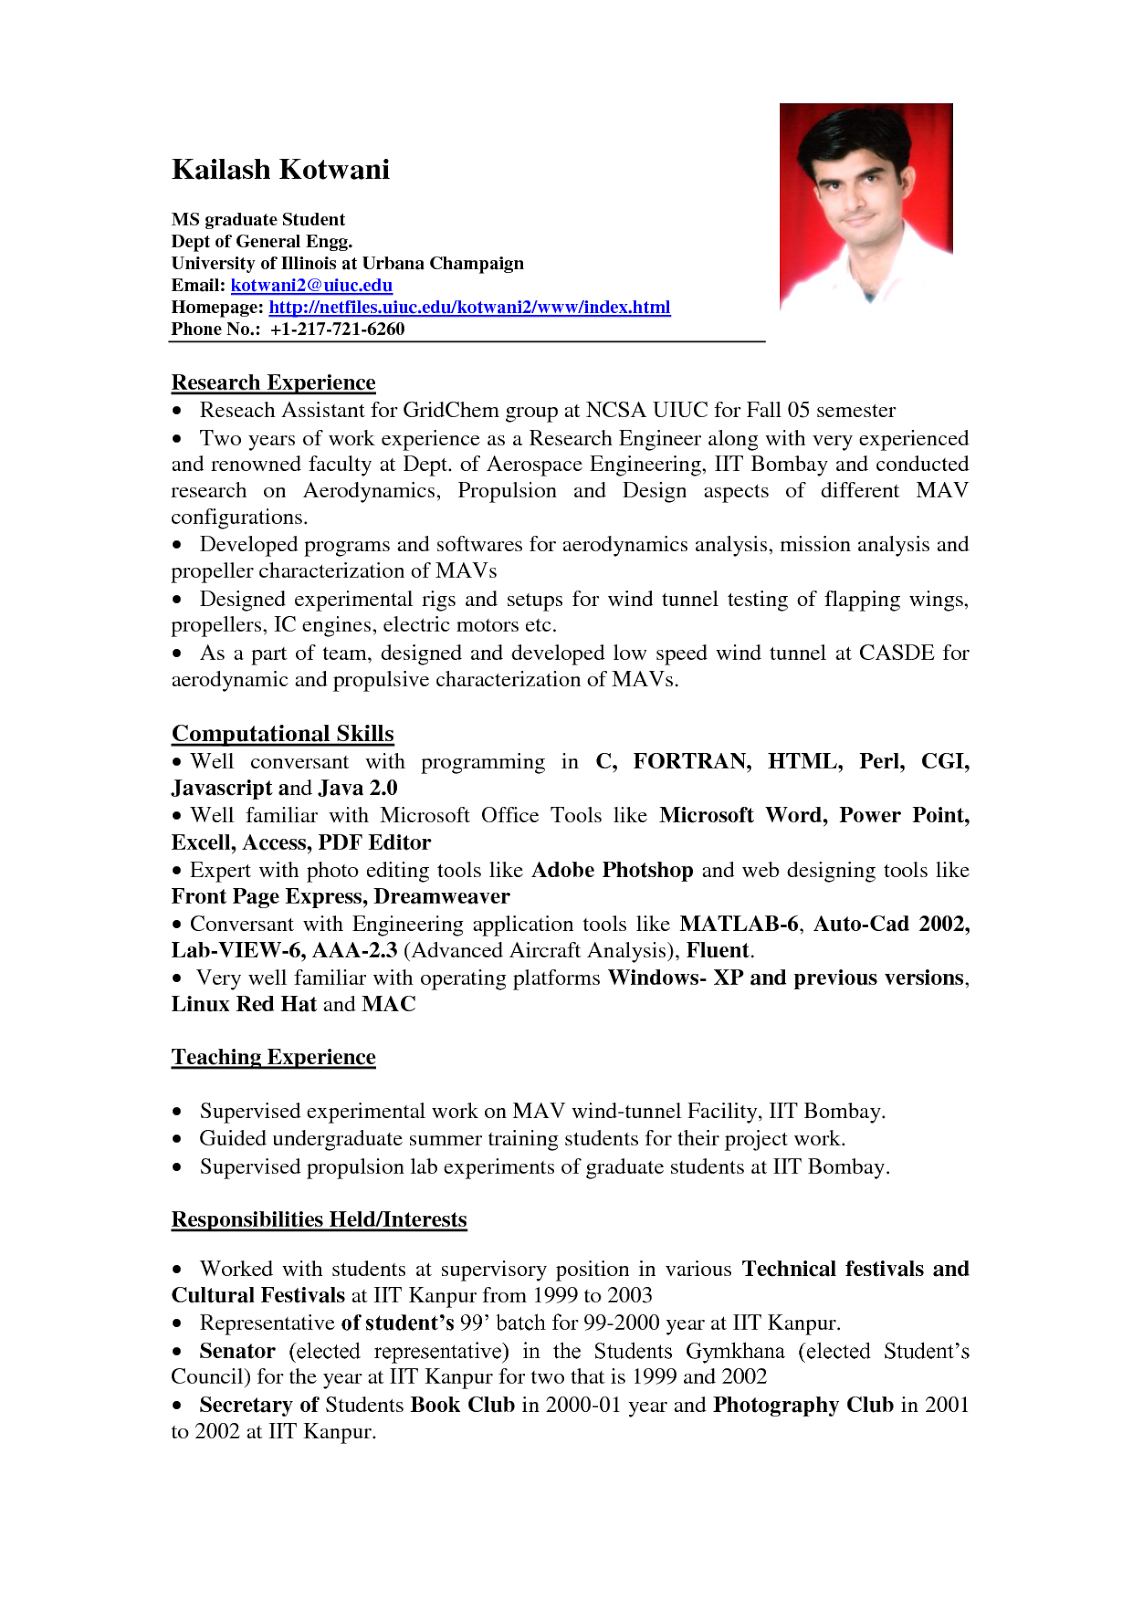 Example of a student resume